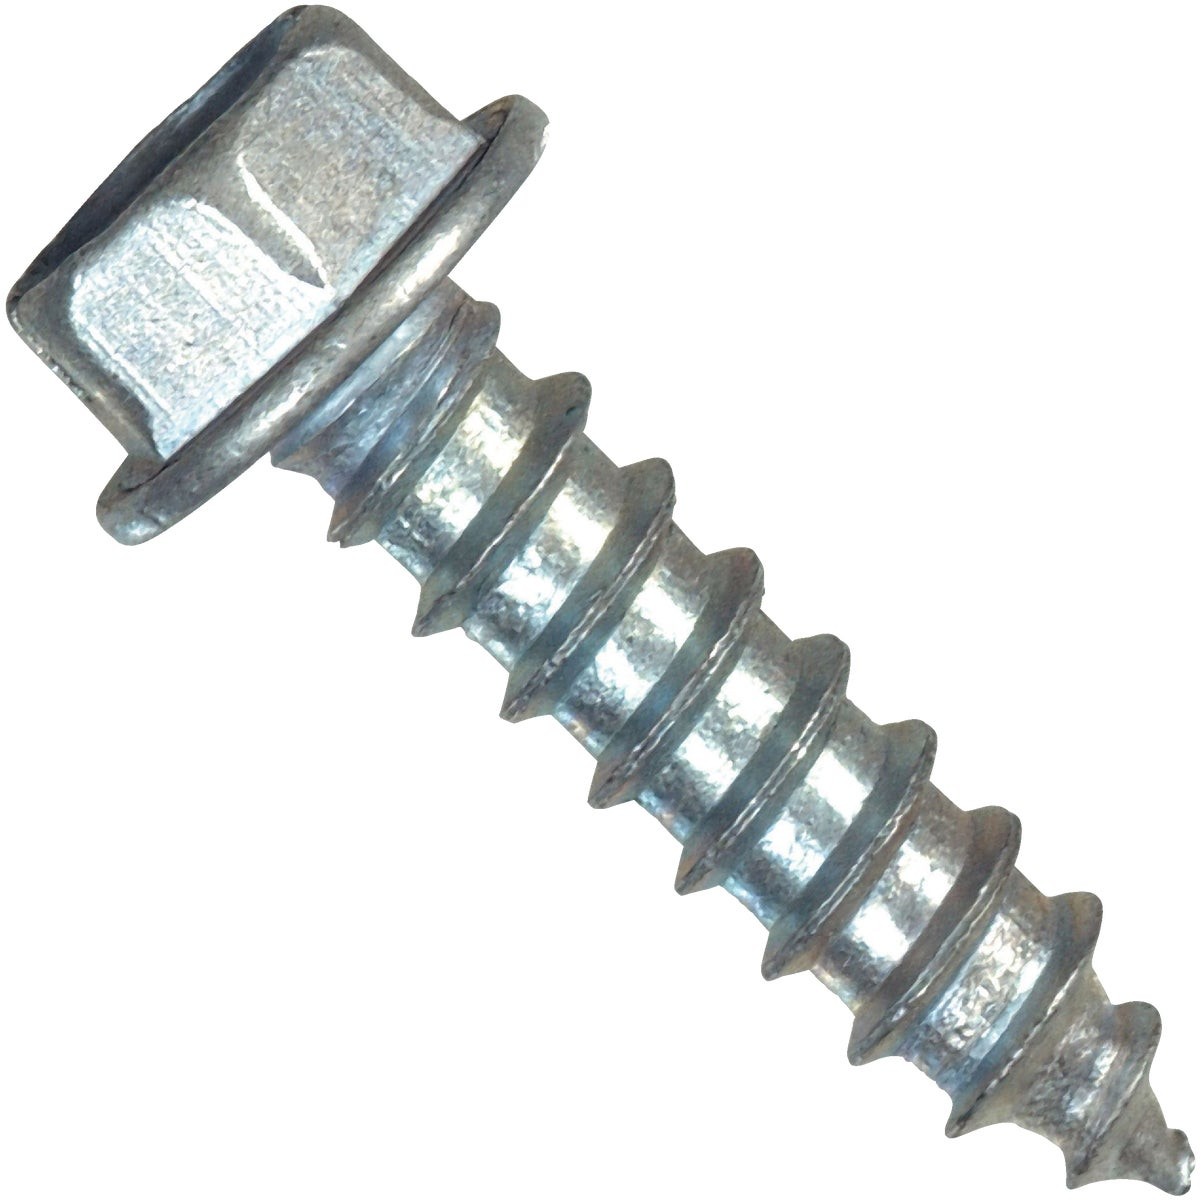 8X3/4 HWH SHT MTL SCREW - 70277 by Hillman Fastener